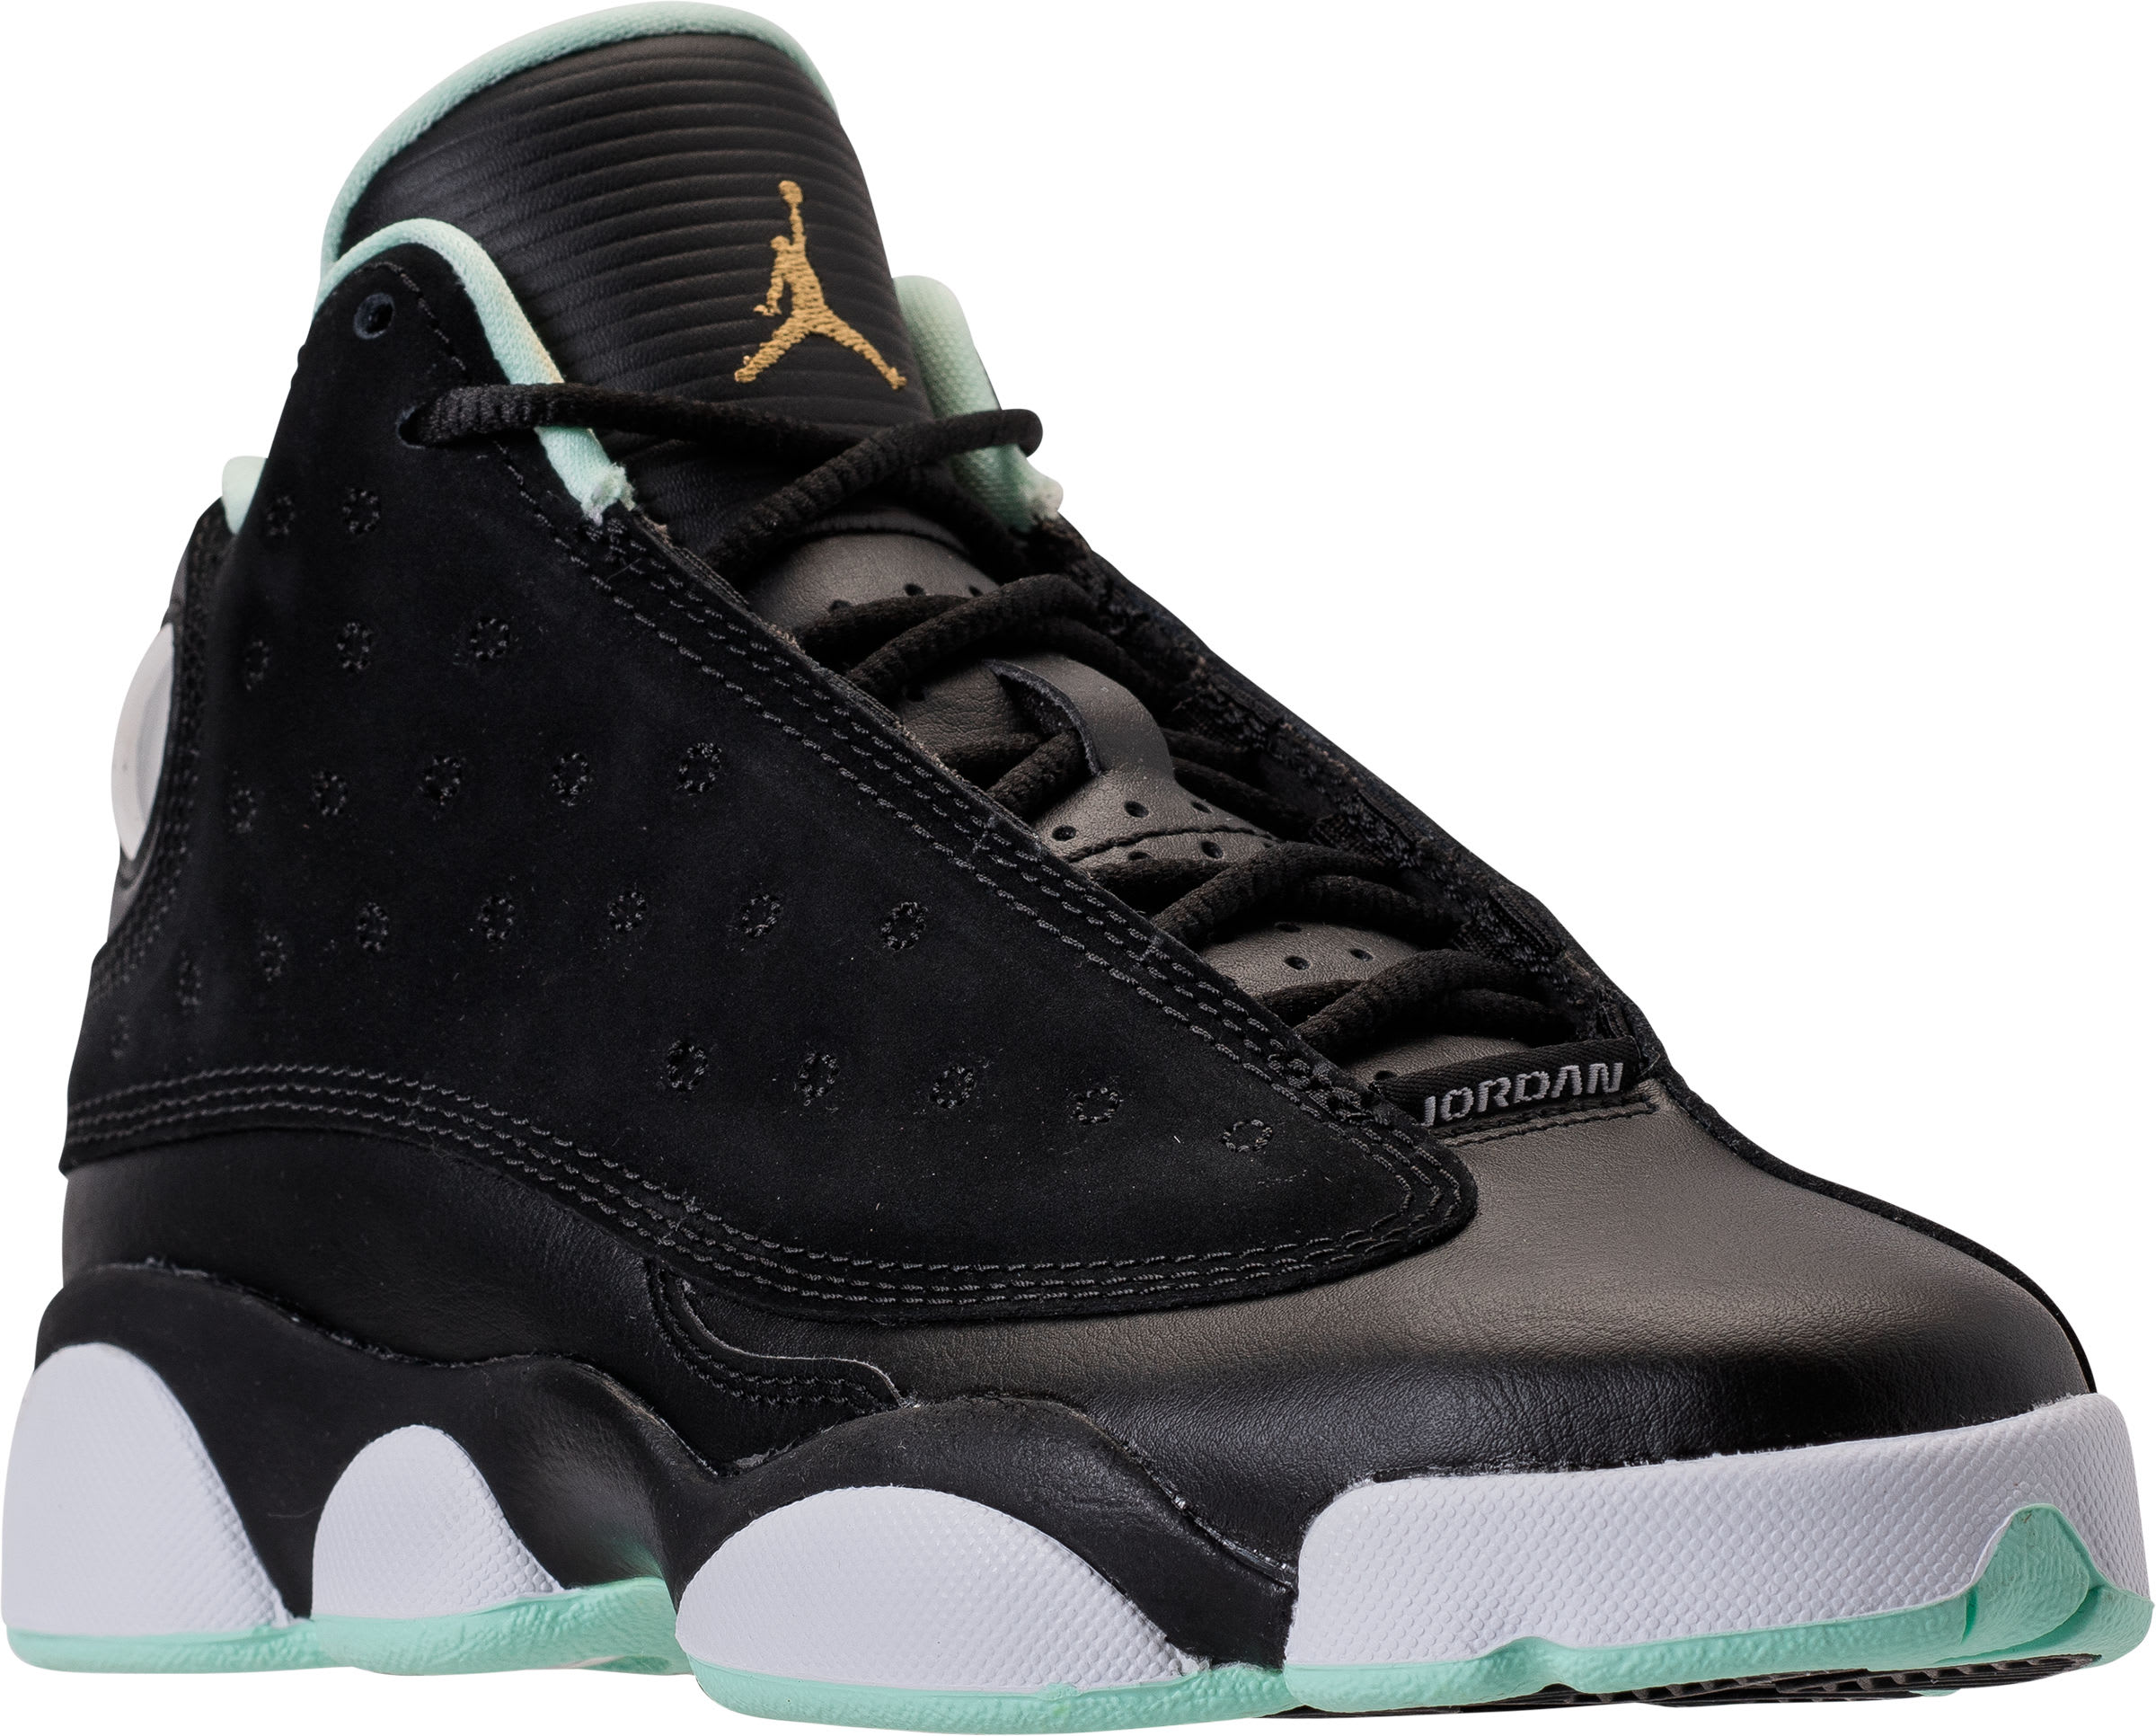 Air Jordan 13 GS Mint Foam Release Date Main 439358-015